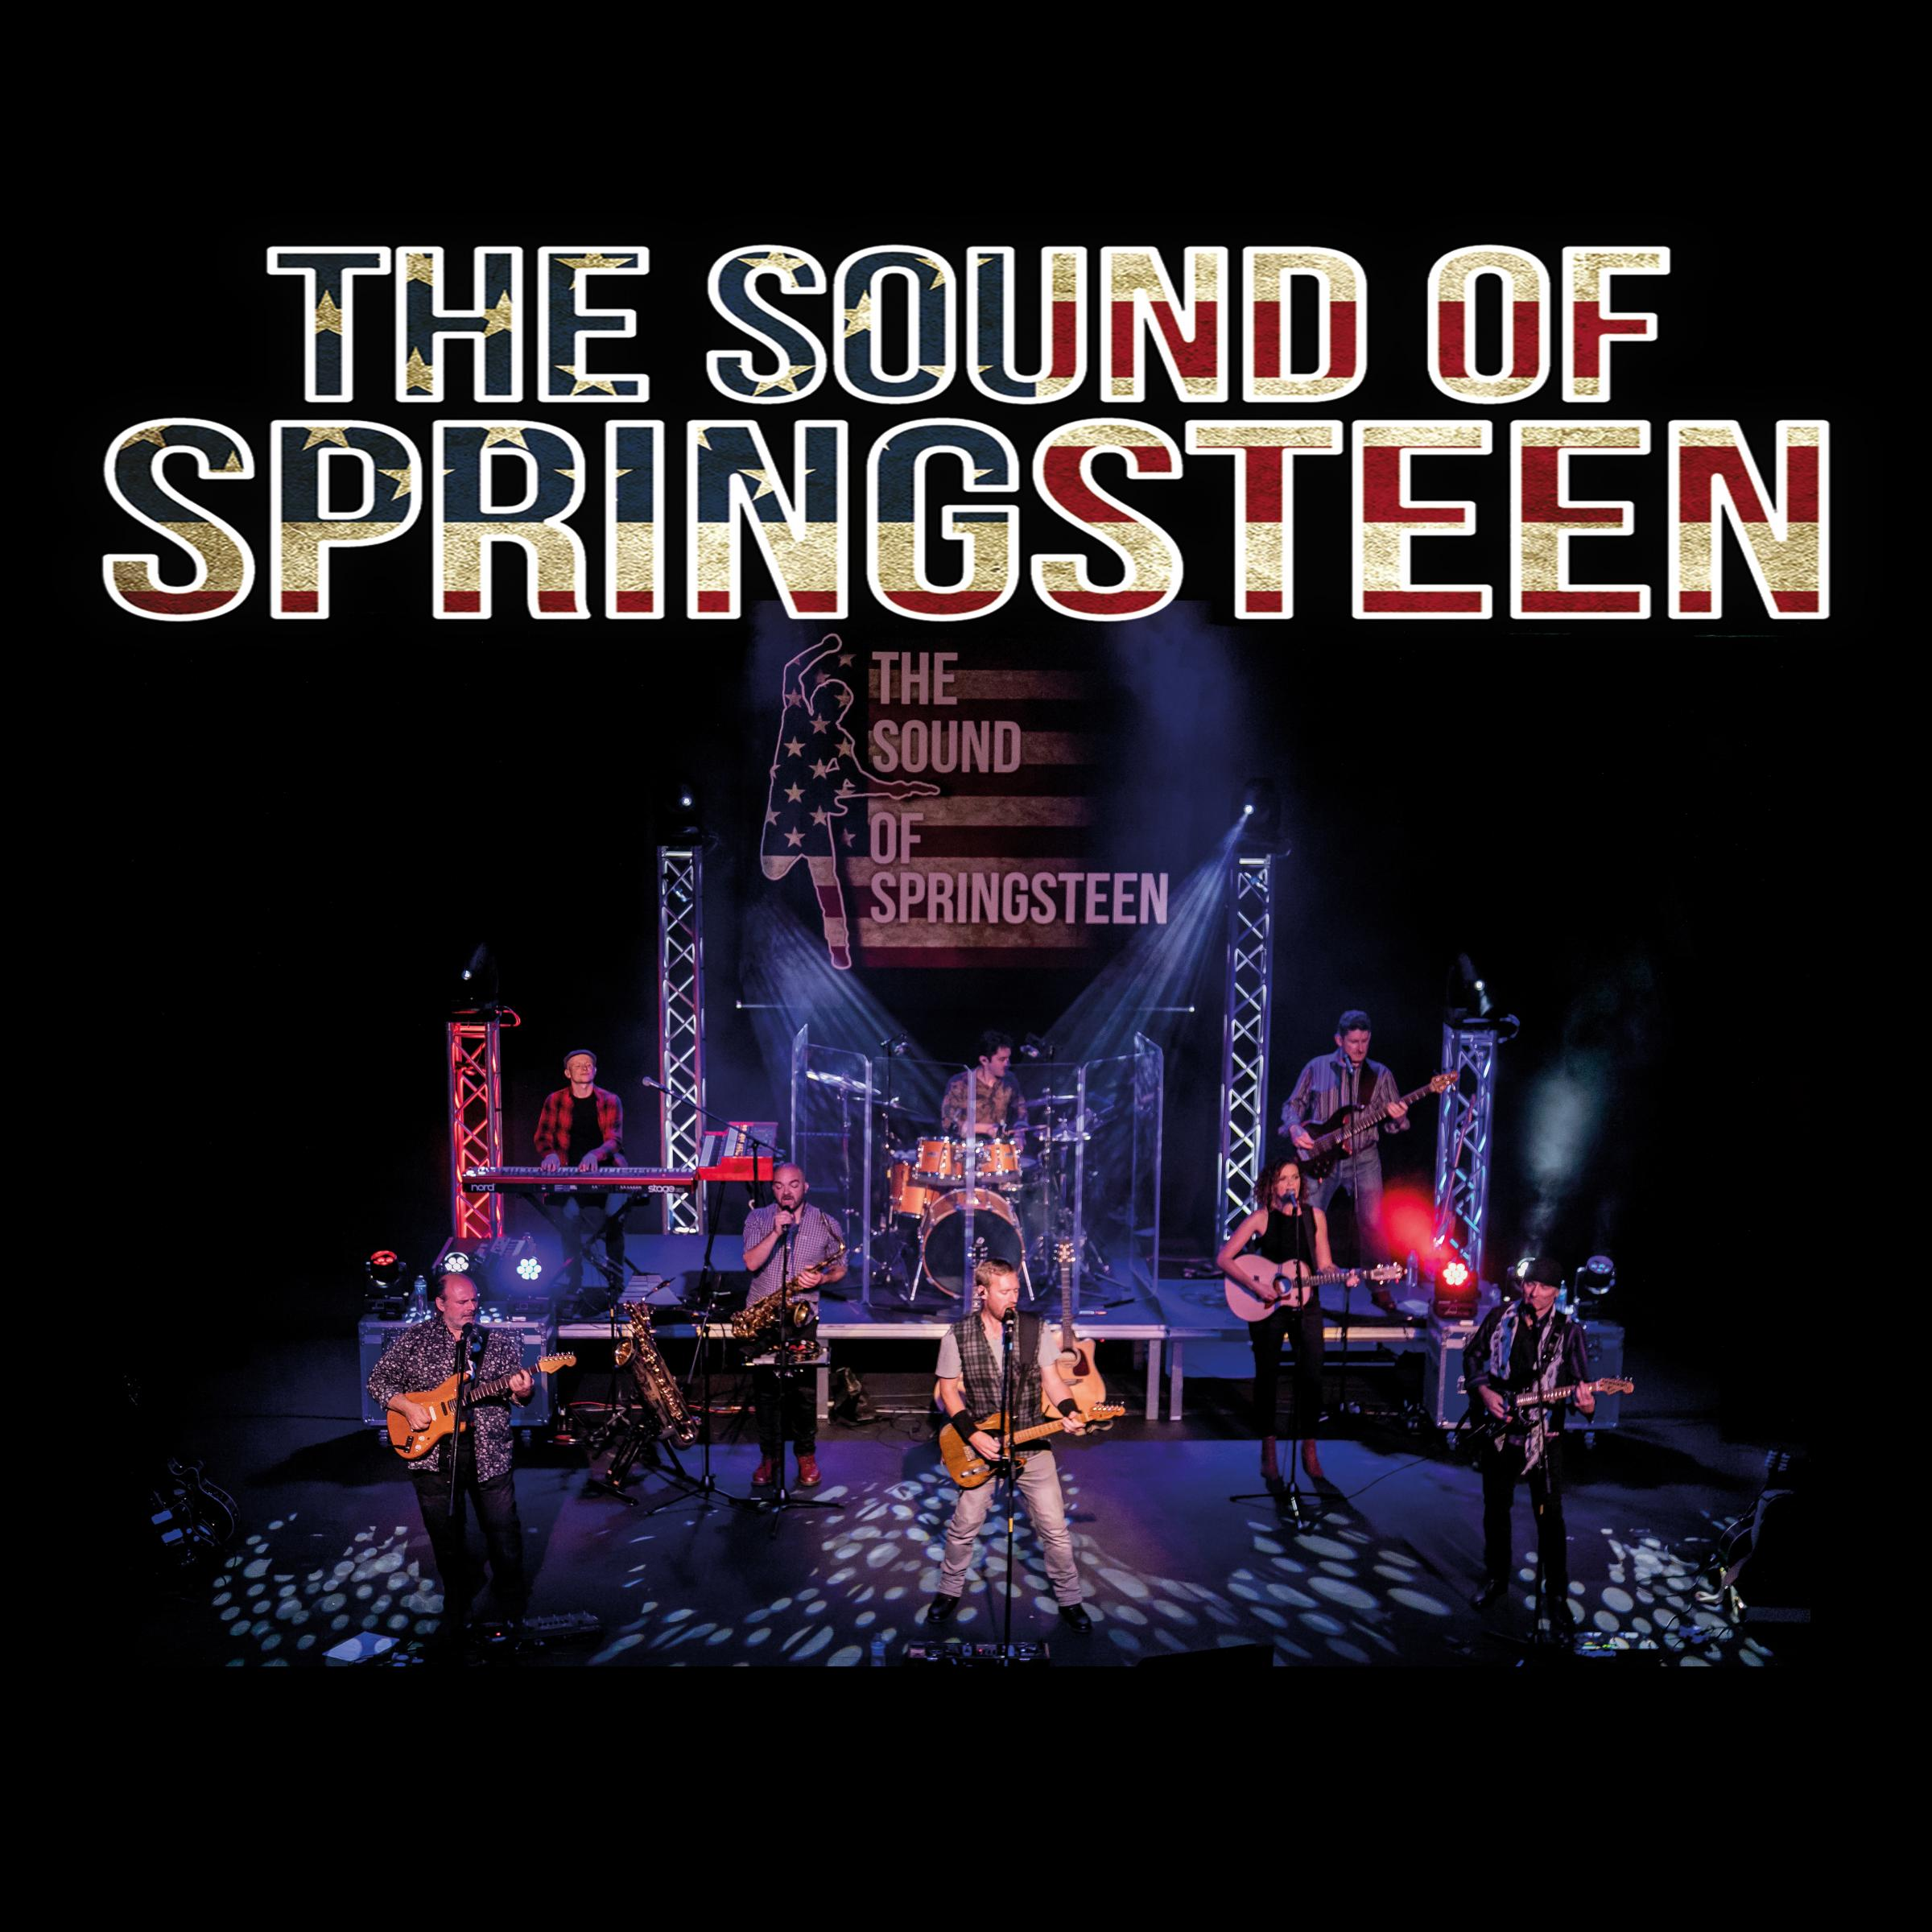 Sound of Springsteen